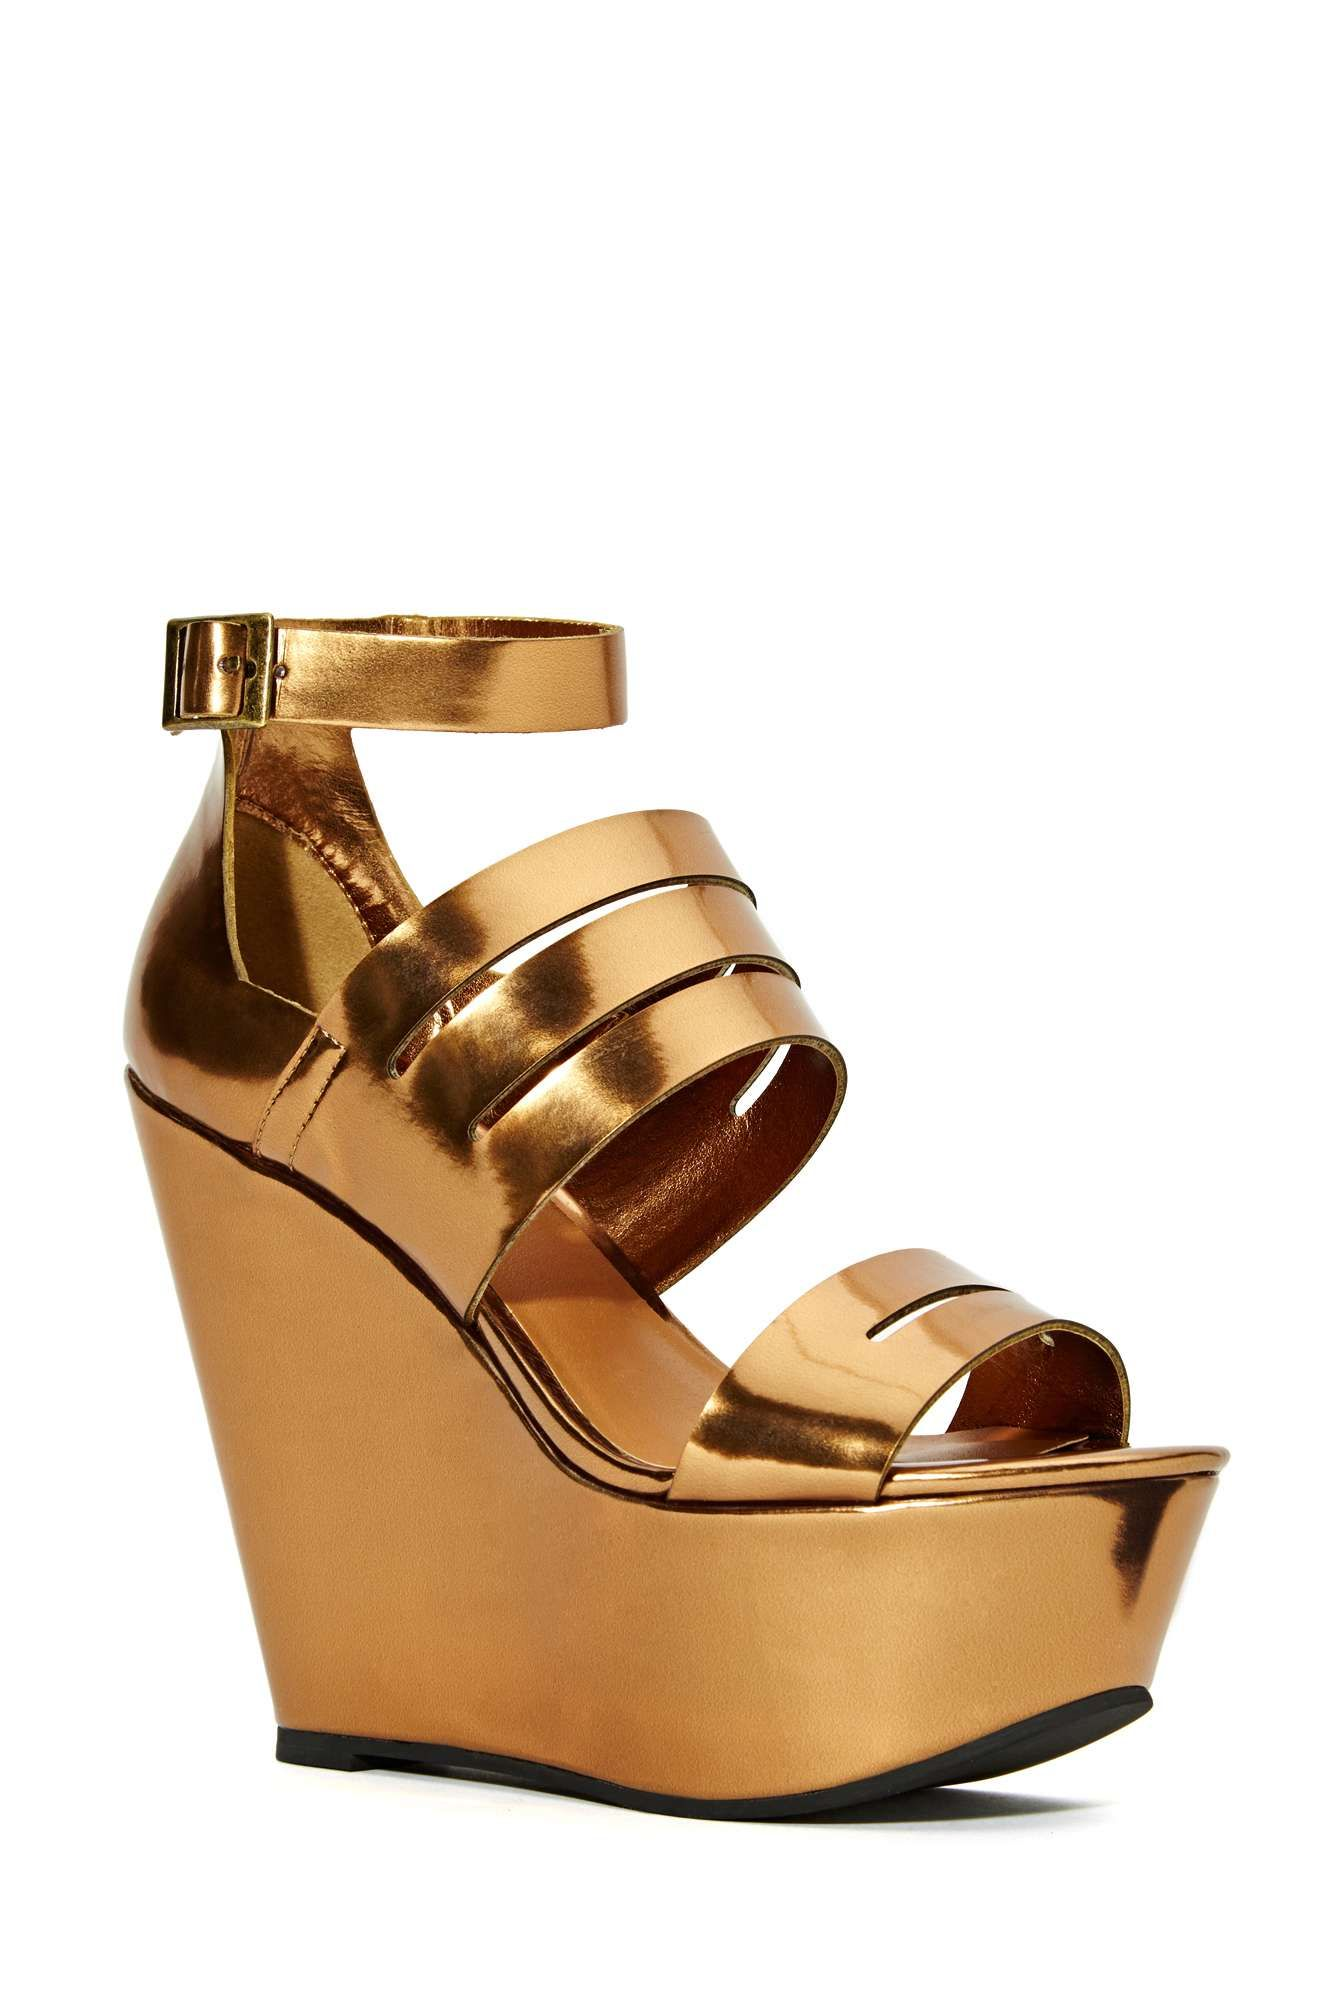 Shoe Cult Halcyon Wedge at Nasty Gal